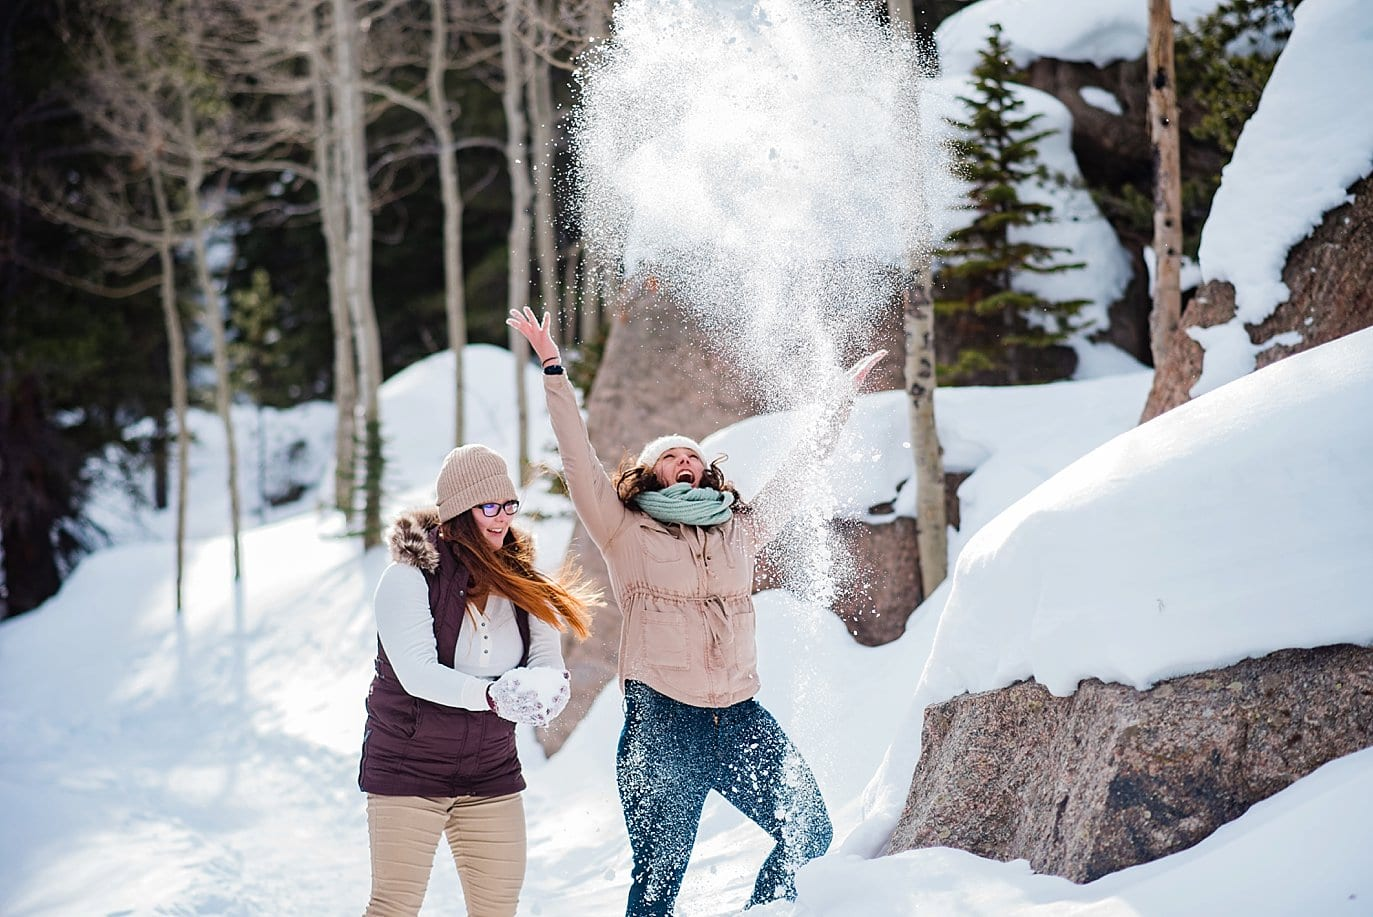 same-sex couple plays in snow Alberta Falls Rocky Mountain National Park winter hiking engagement by Rocky Mountain engagement photographer Jennie Crate, Photographer